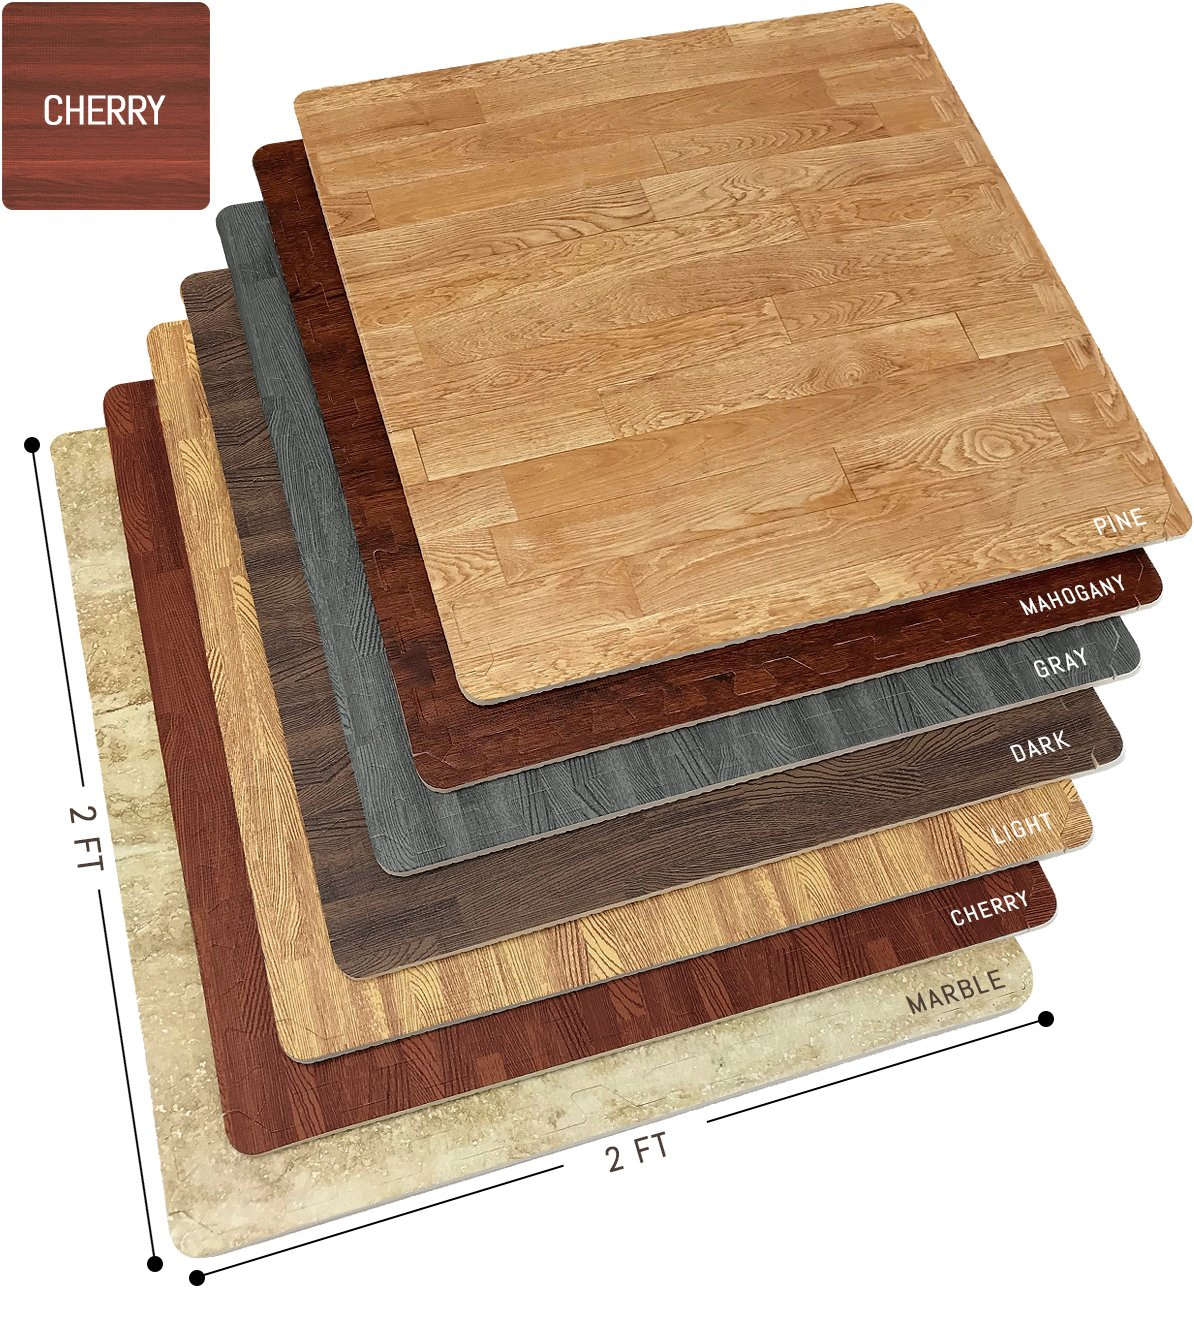 Sorbus Wood Floor Mats Foam Interlocking Wood Mats Each Tile 4 Square Feet 3/8-Inch Thick Puzzle Wood Tiles with Borders - for Home Office Playroom Basement (6 Tiles 24 Sq ft, Wood Grain - Cherry)